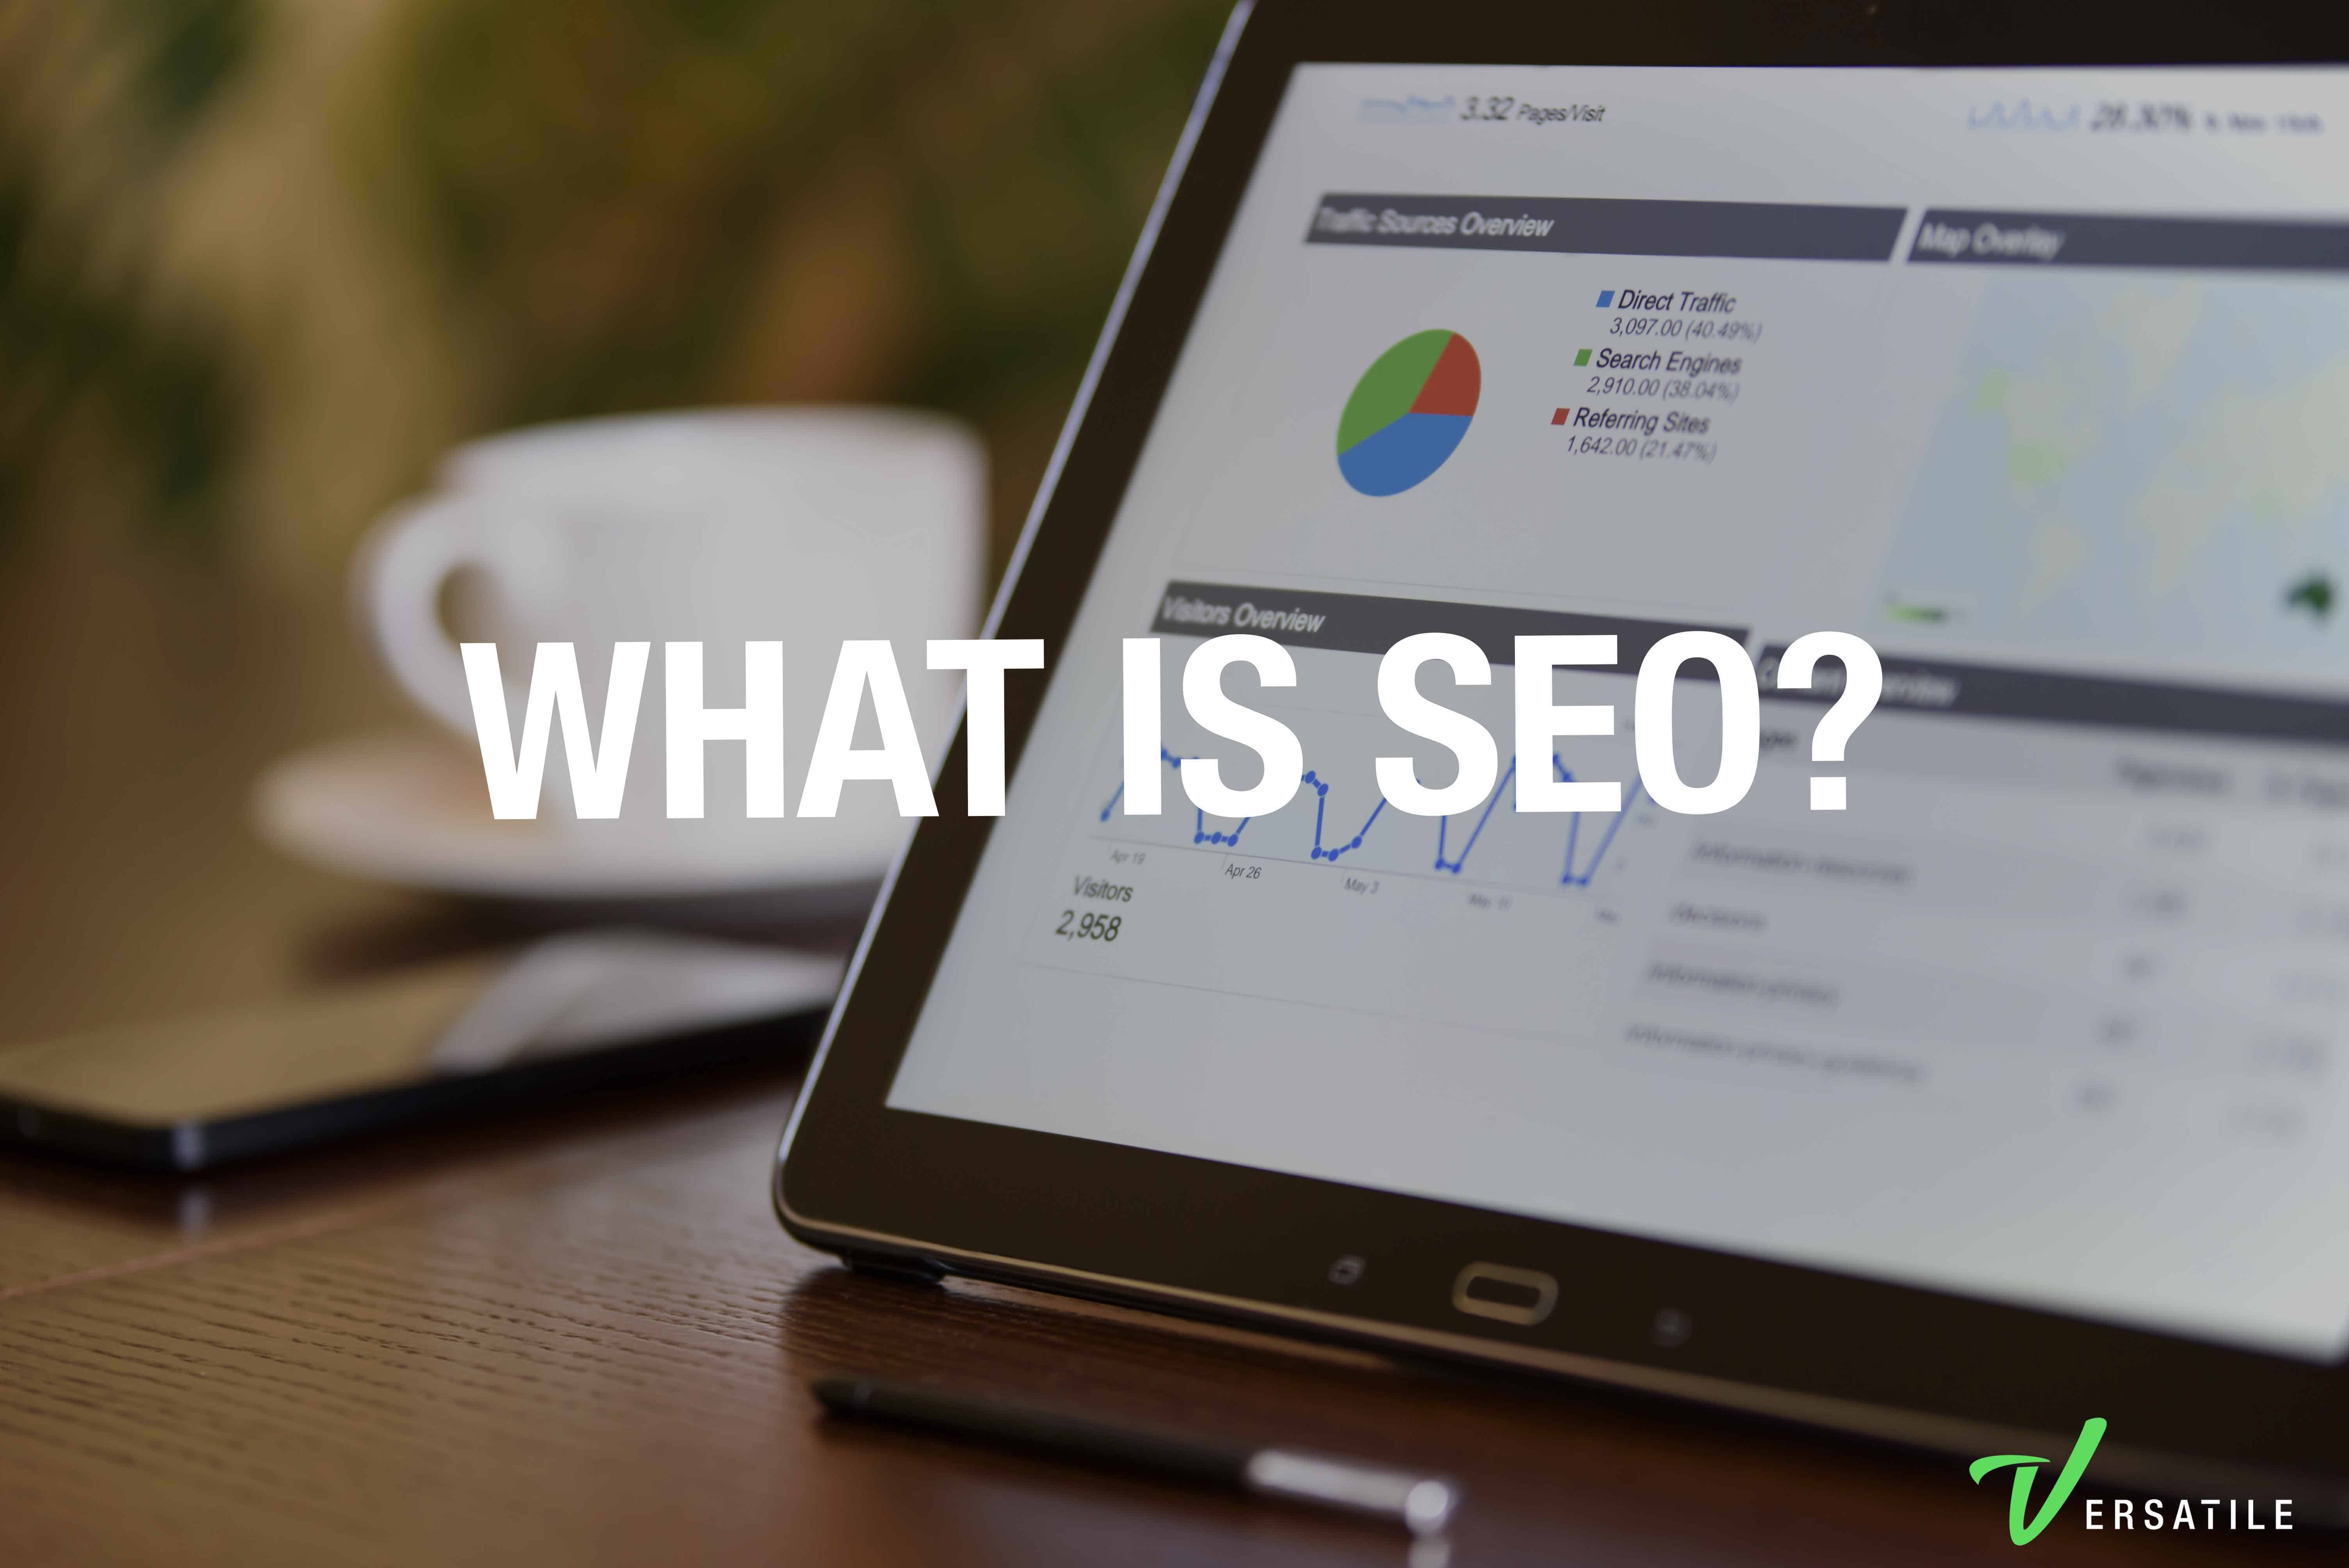 Versatile Business Strategies SEO